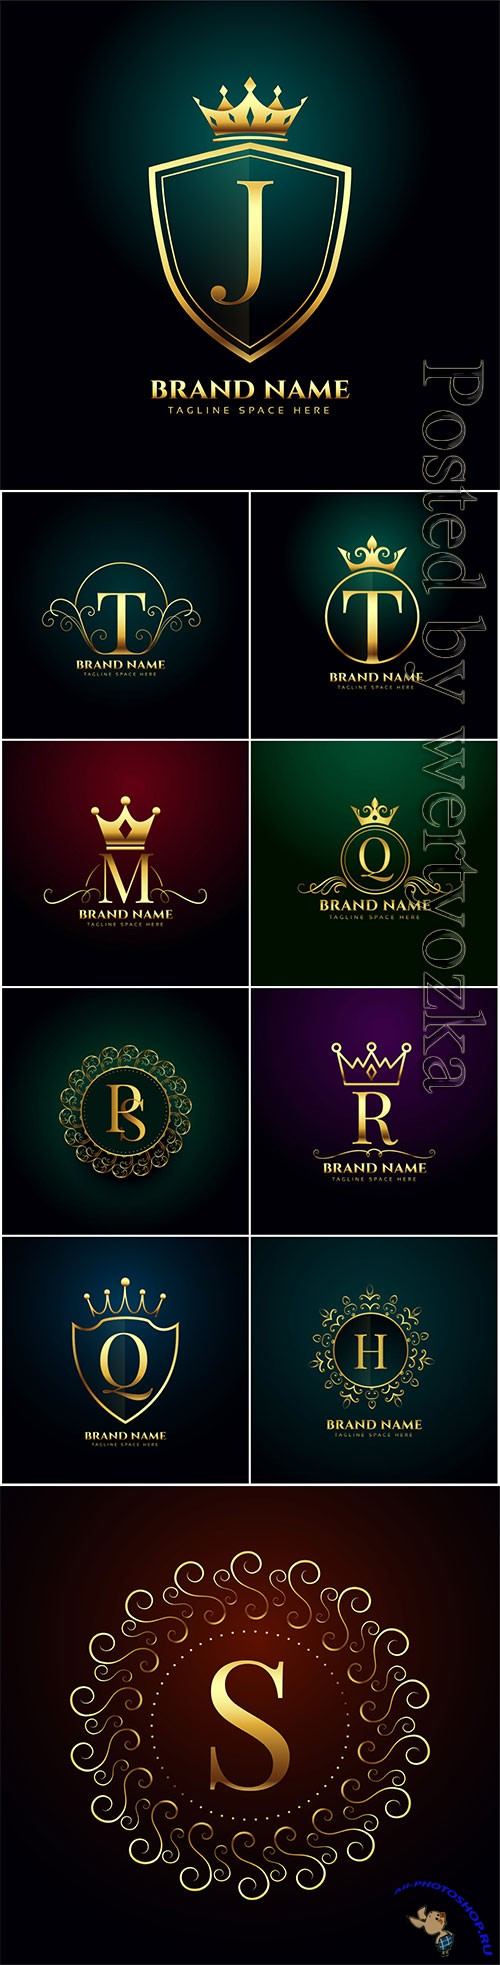 Luxury letter oranmental golden vector logo